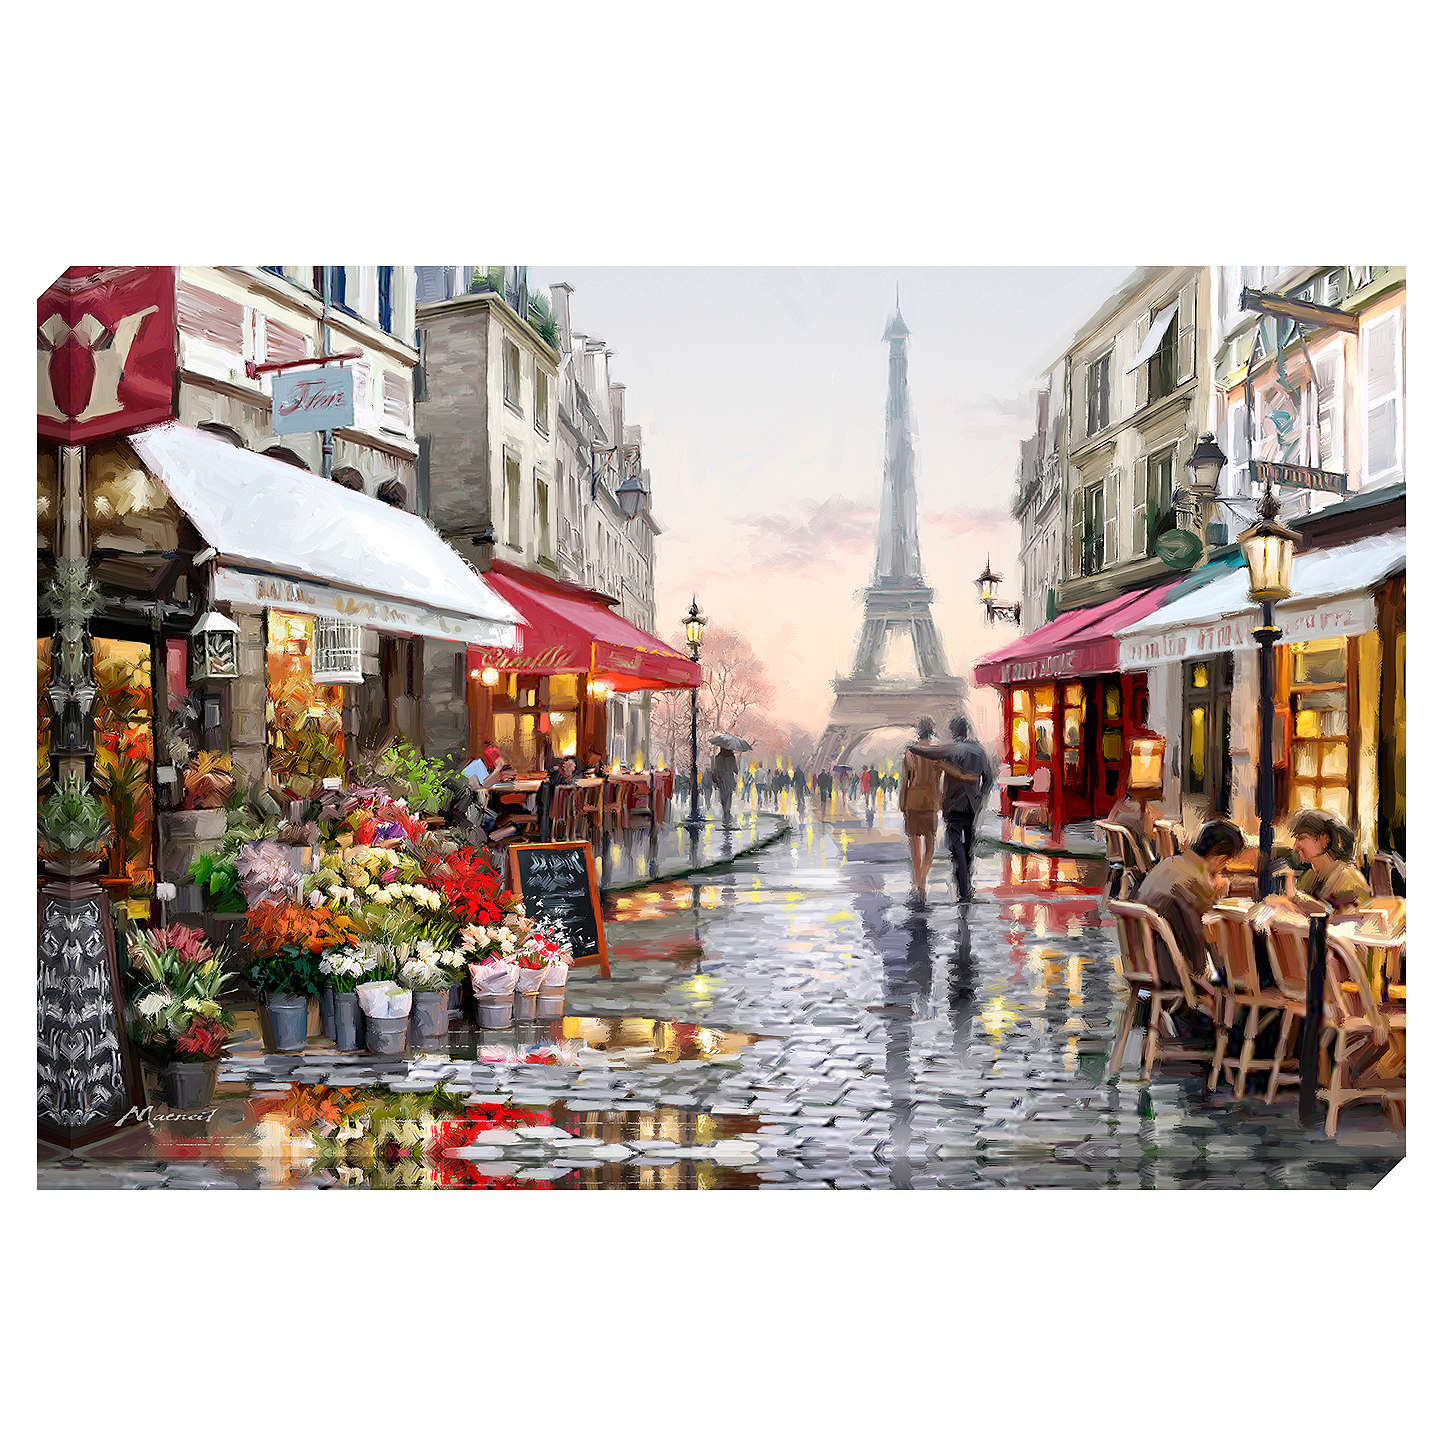 richard macneil paris flower shop print on canvas 70 x 100cm at john lewis. Black Bedroom Furniture Sets. Home Design Ideas